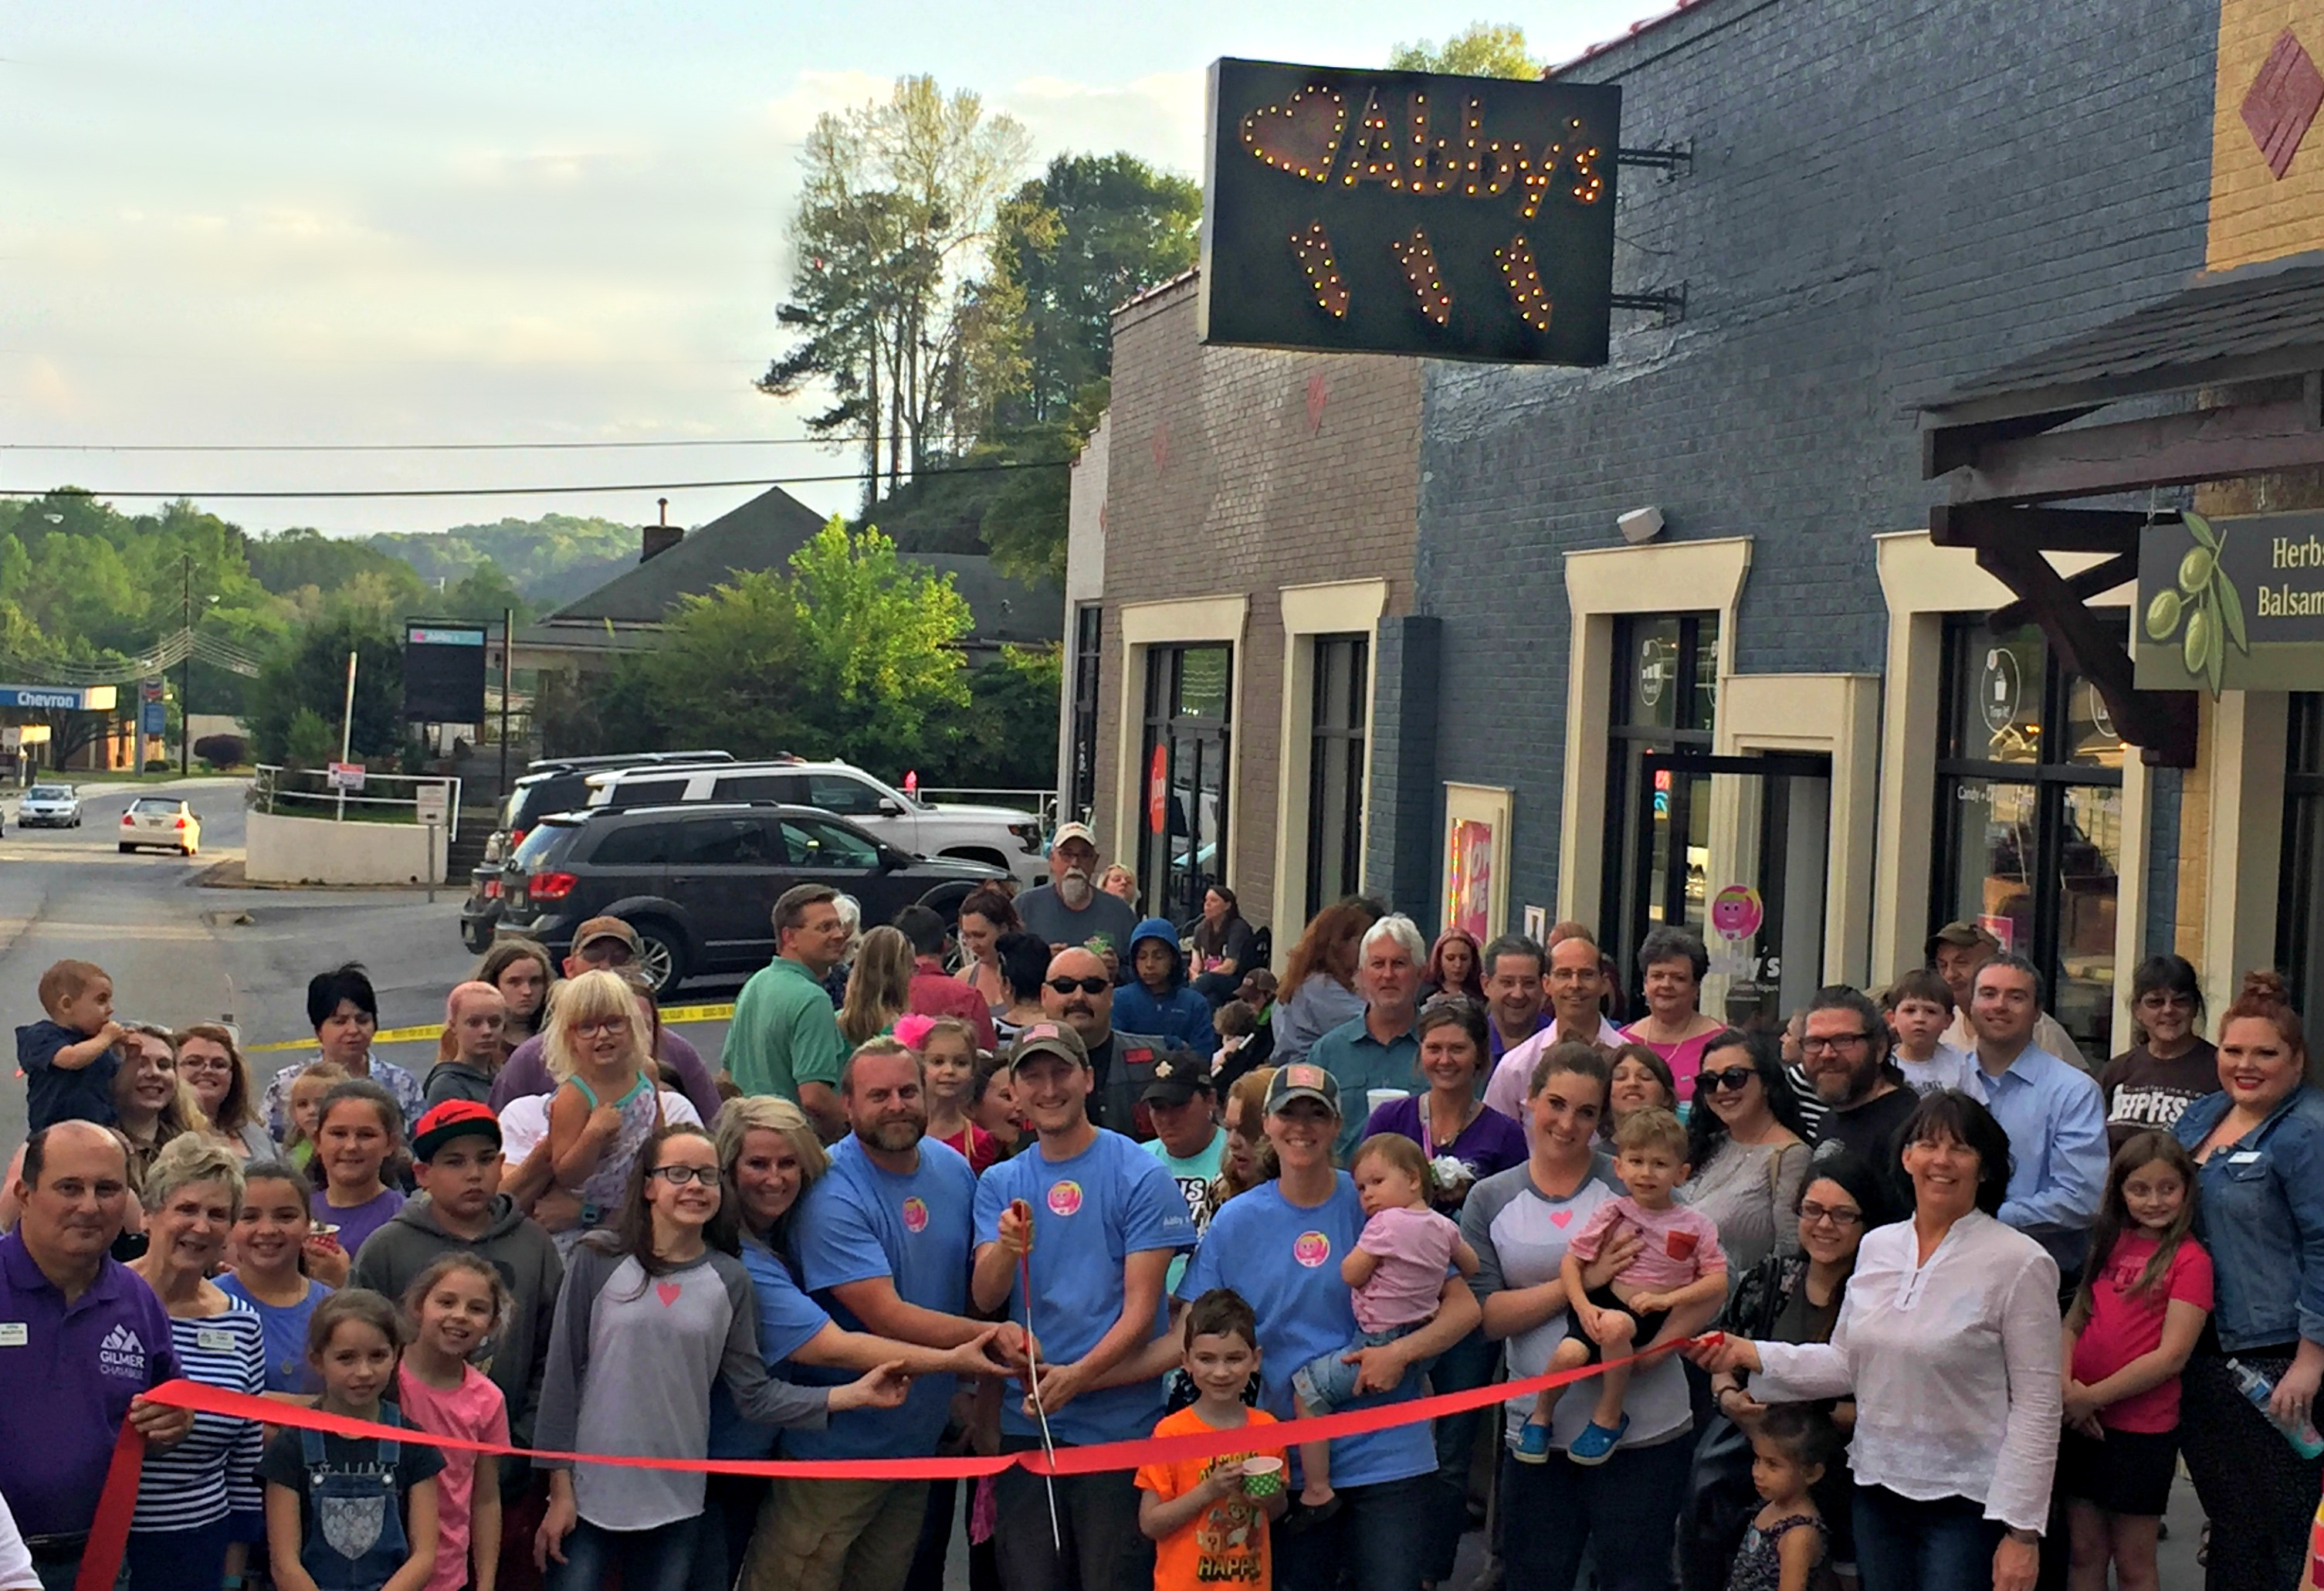 Abbys-Ribbon-Cutting Ribbon Cutting for Abby's Ice Cream and Frozen Yogurt - Gilmer County Chamber of Commerce